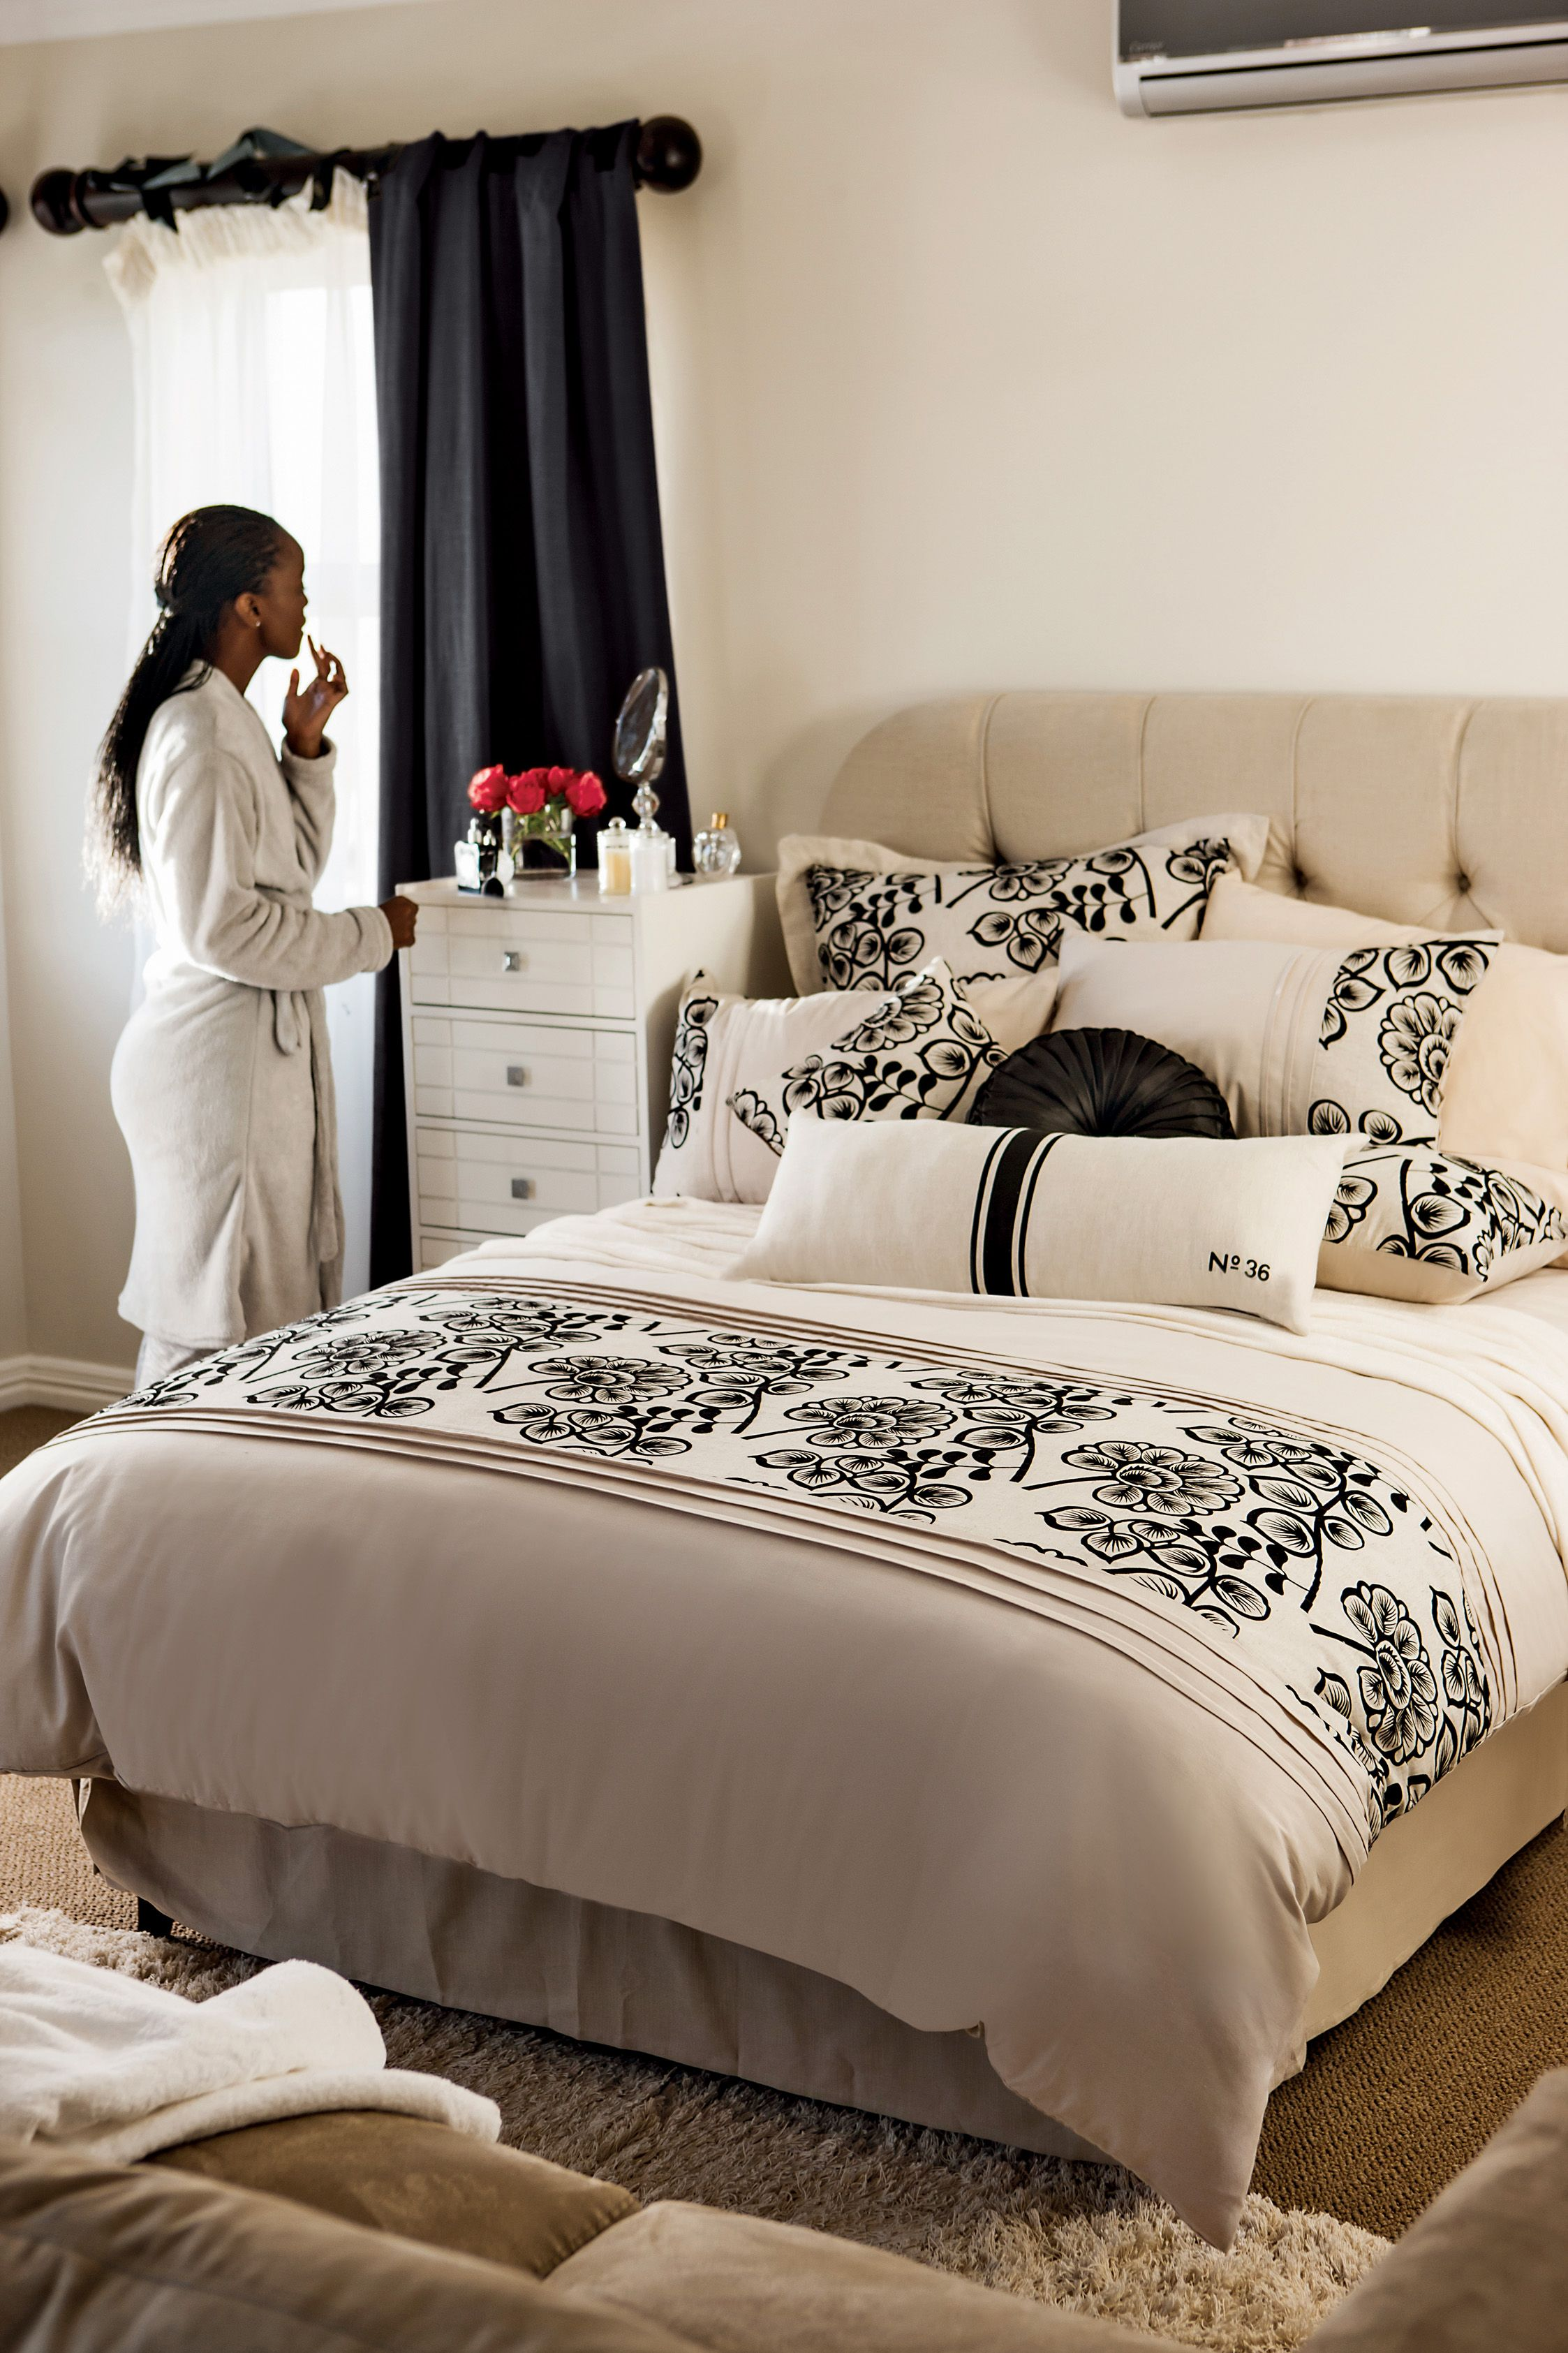 Mr price home bedroom view our range at for Home decor bedroom